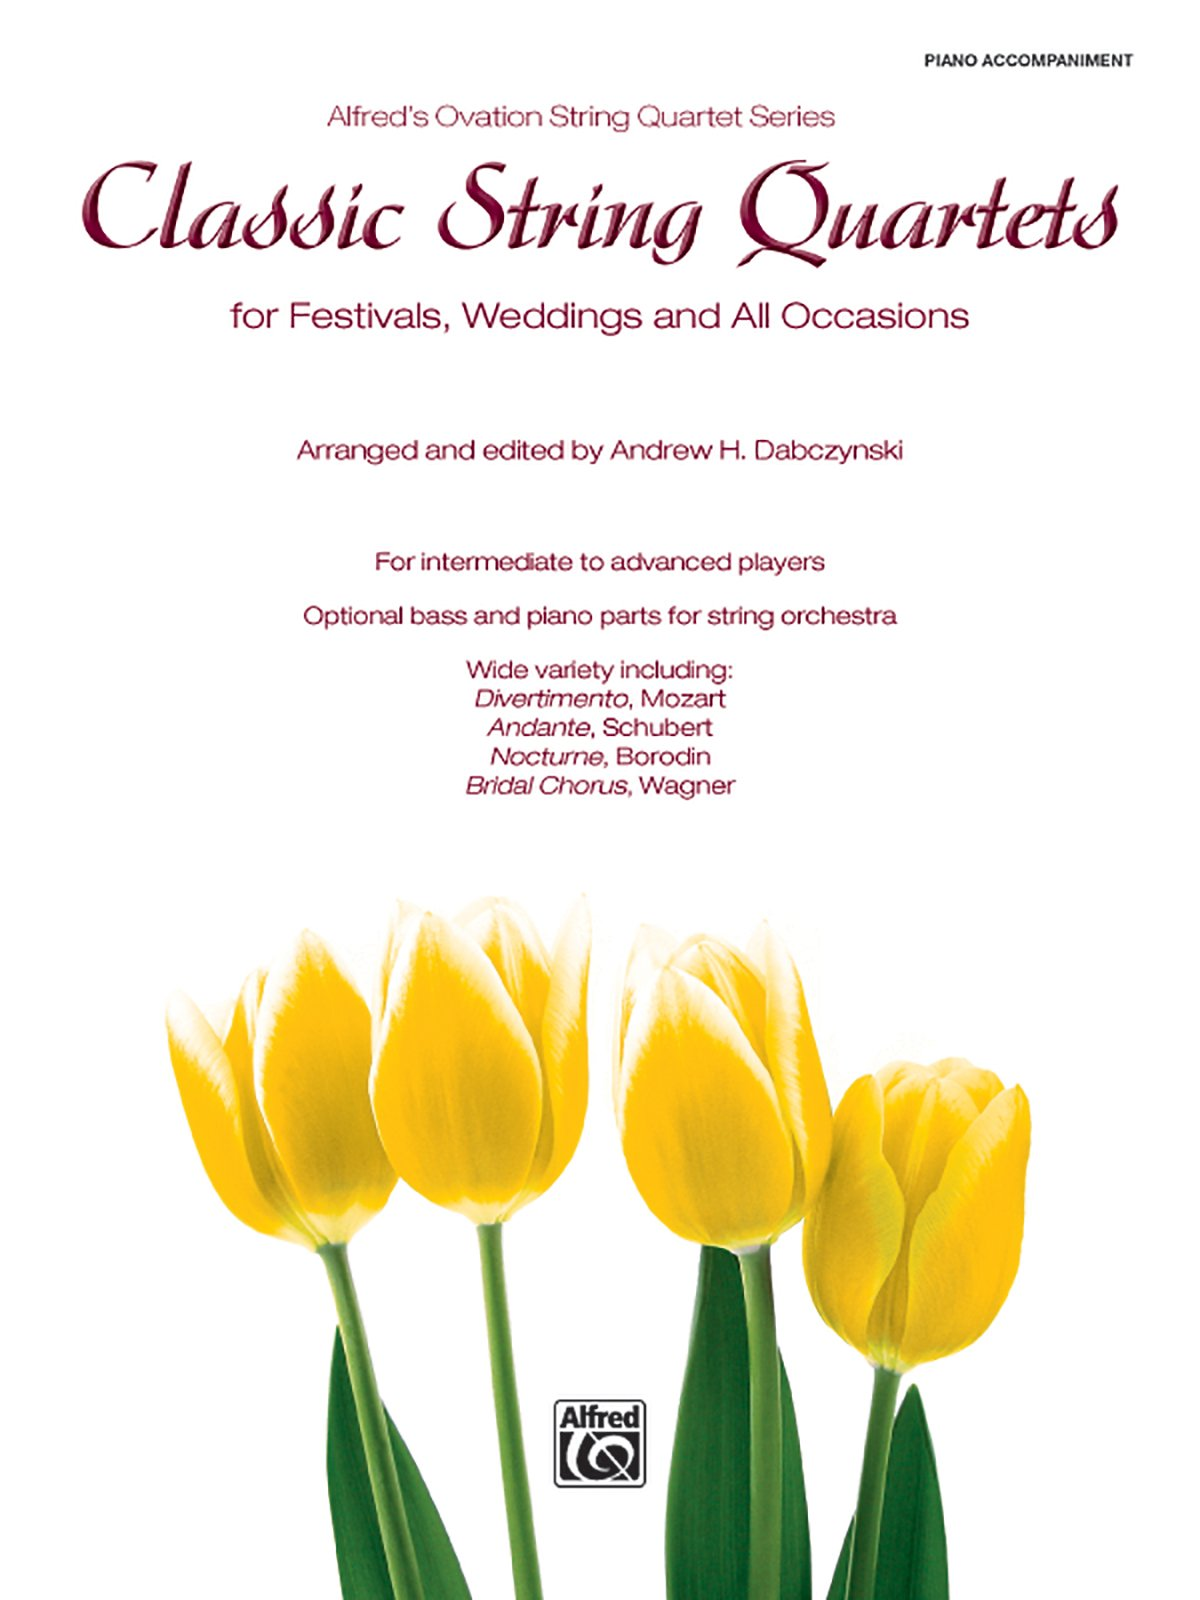 Classic String Quartets for Festivals, Weddings, and All Occasions: Piano Acc., Parts (Alfred's Ovation String Quartet Series) pdf